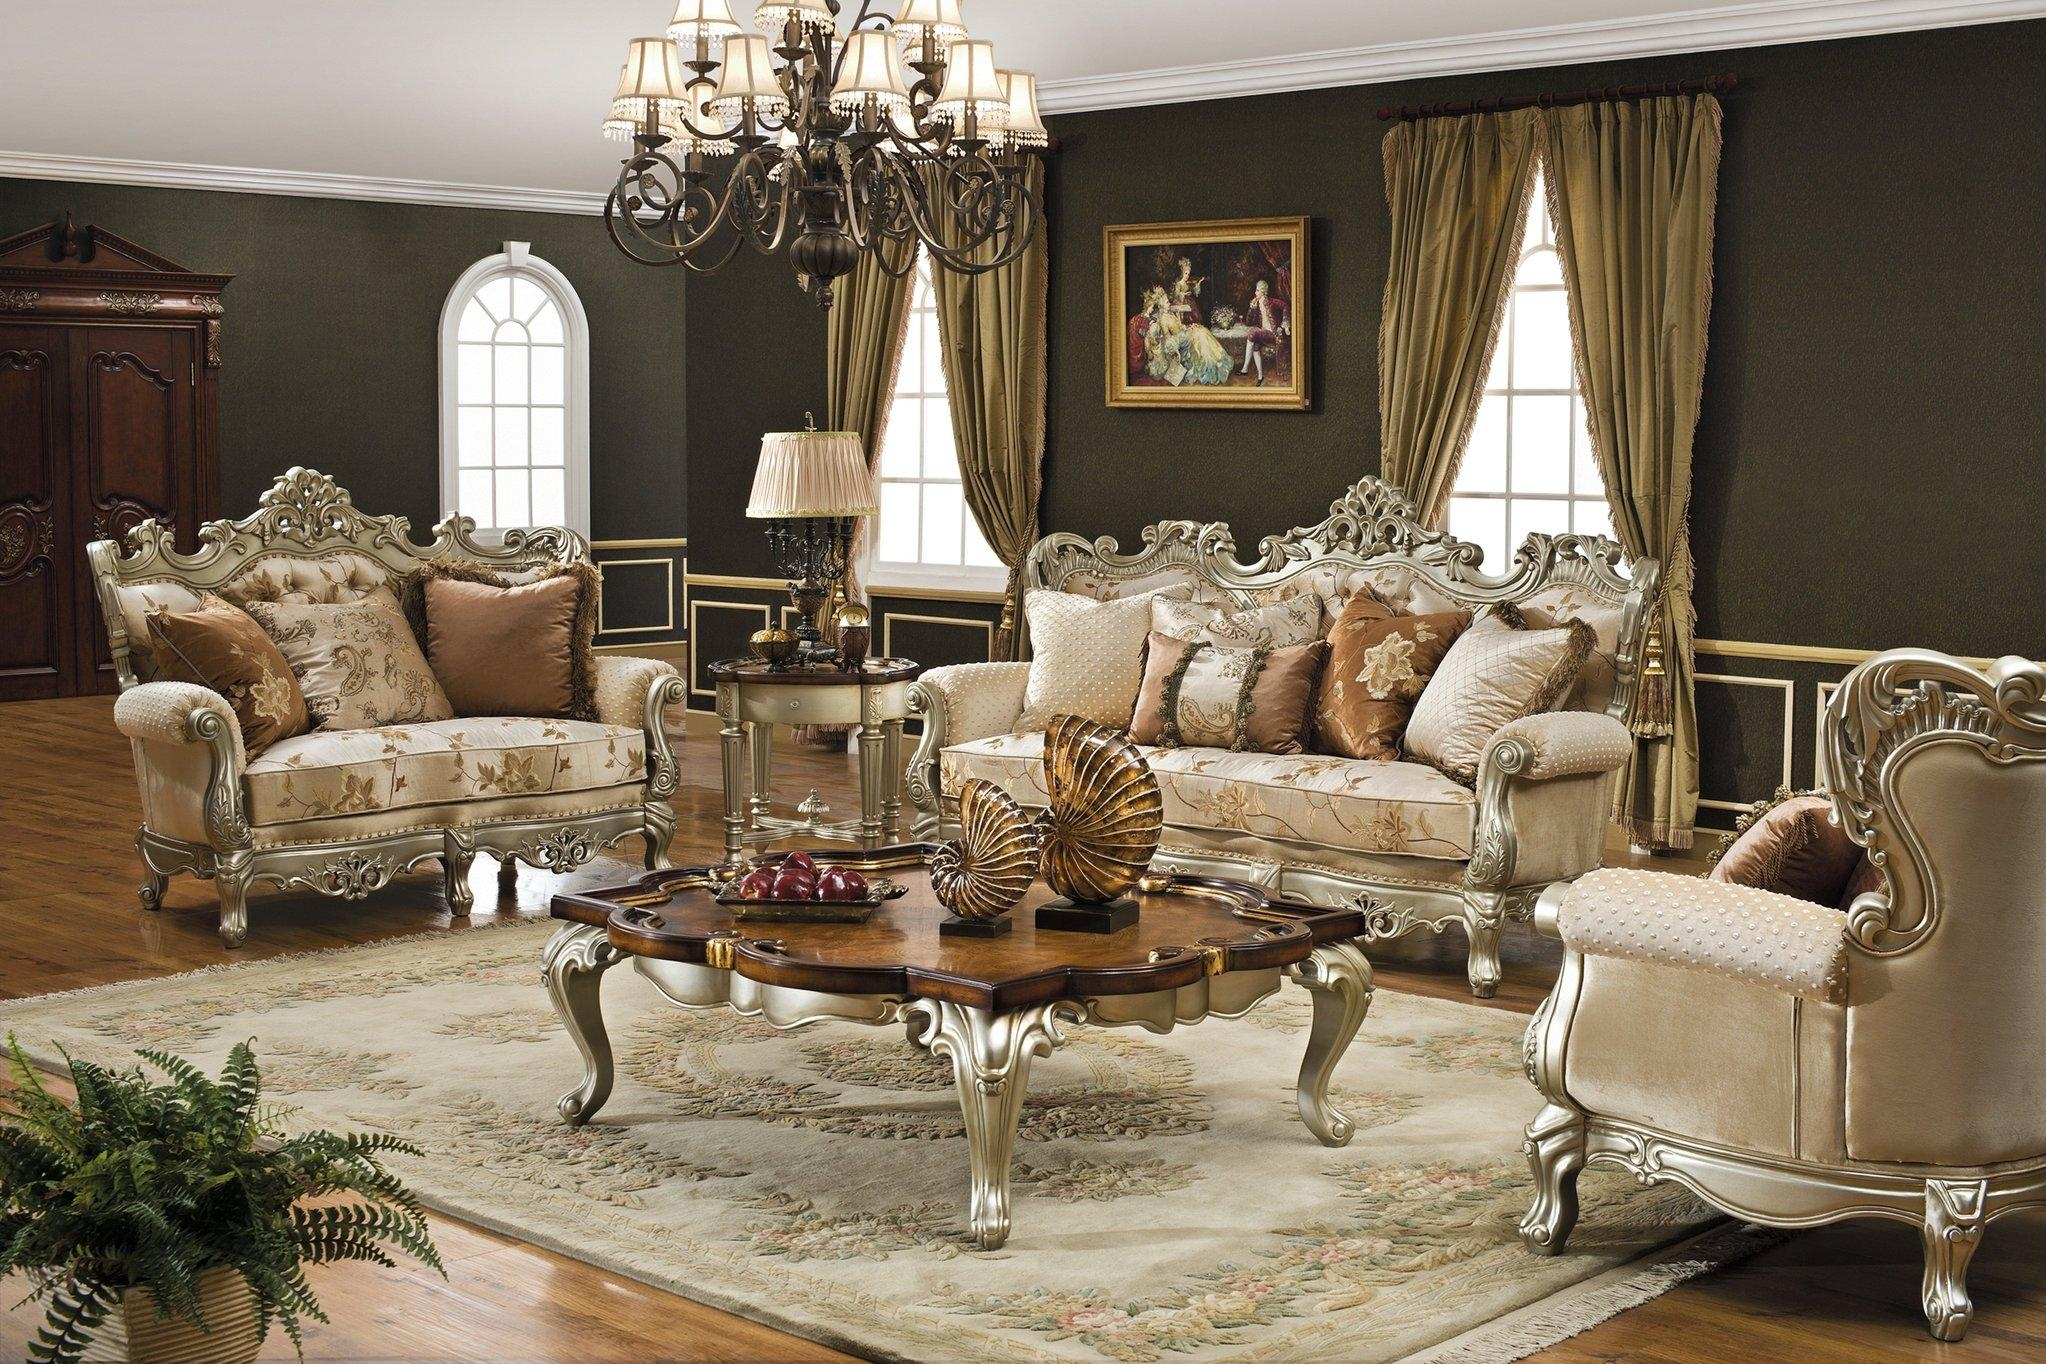 Sofas Center : Traditional Elegant Sofa Setstraditional Sets Set Throughout Elegant Sofas And Chairs (Image 20 of 20)